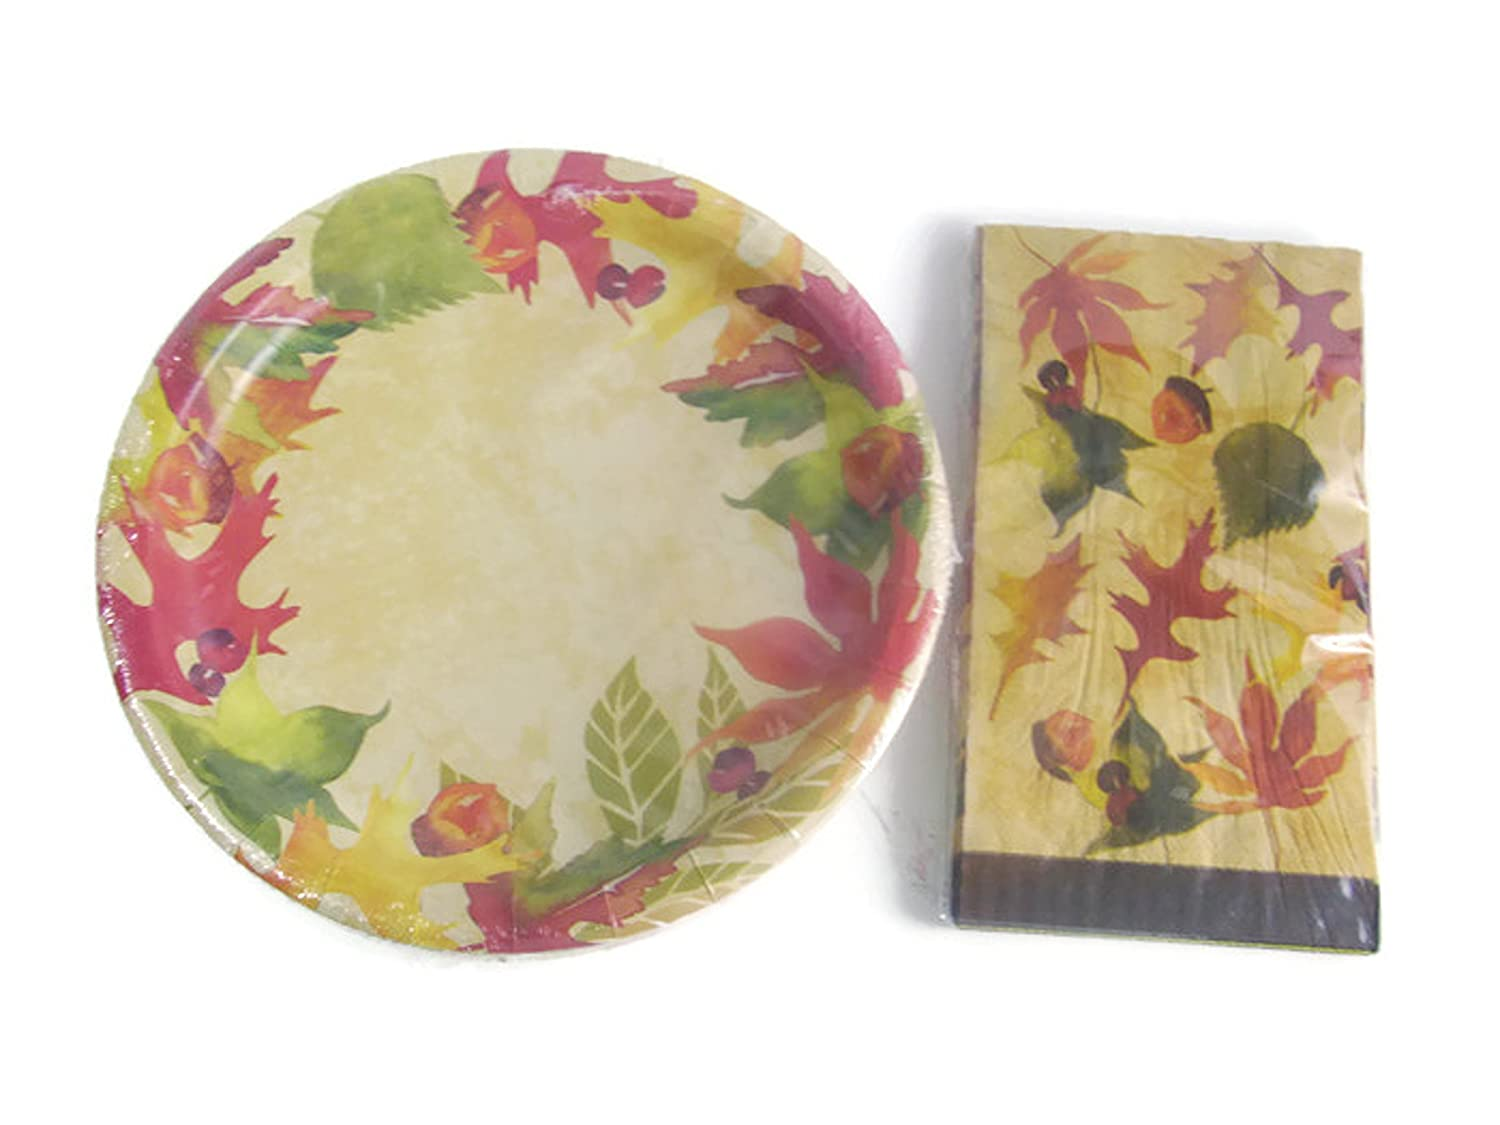 Fall Leaves Paper Plates And Napkin Sets  sc 1 st  Castrophotos & Autumn Paper Plates - Castrophotos